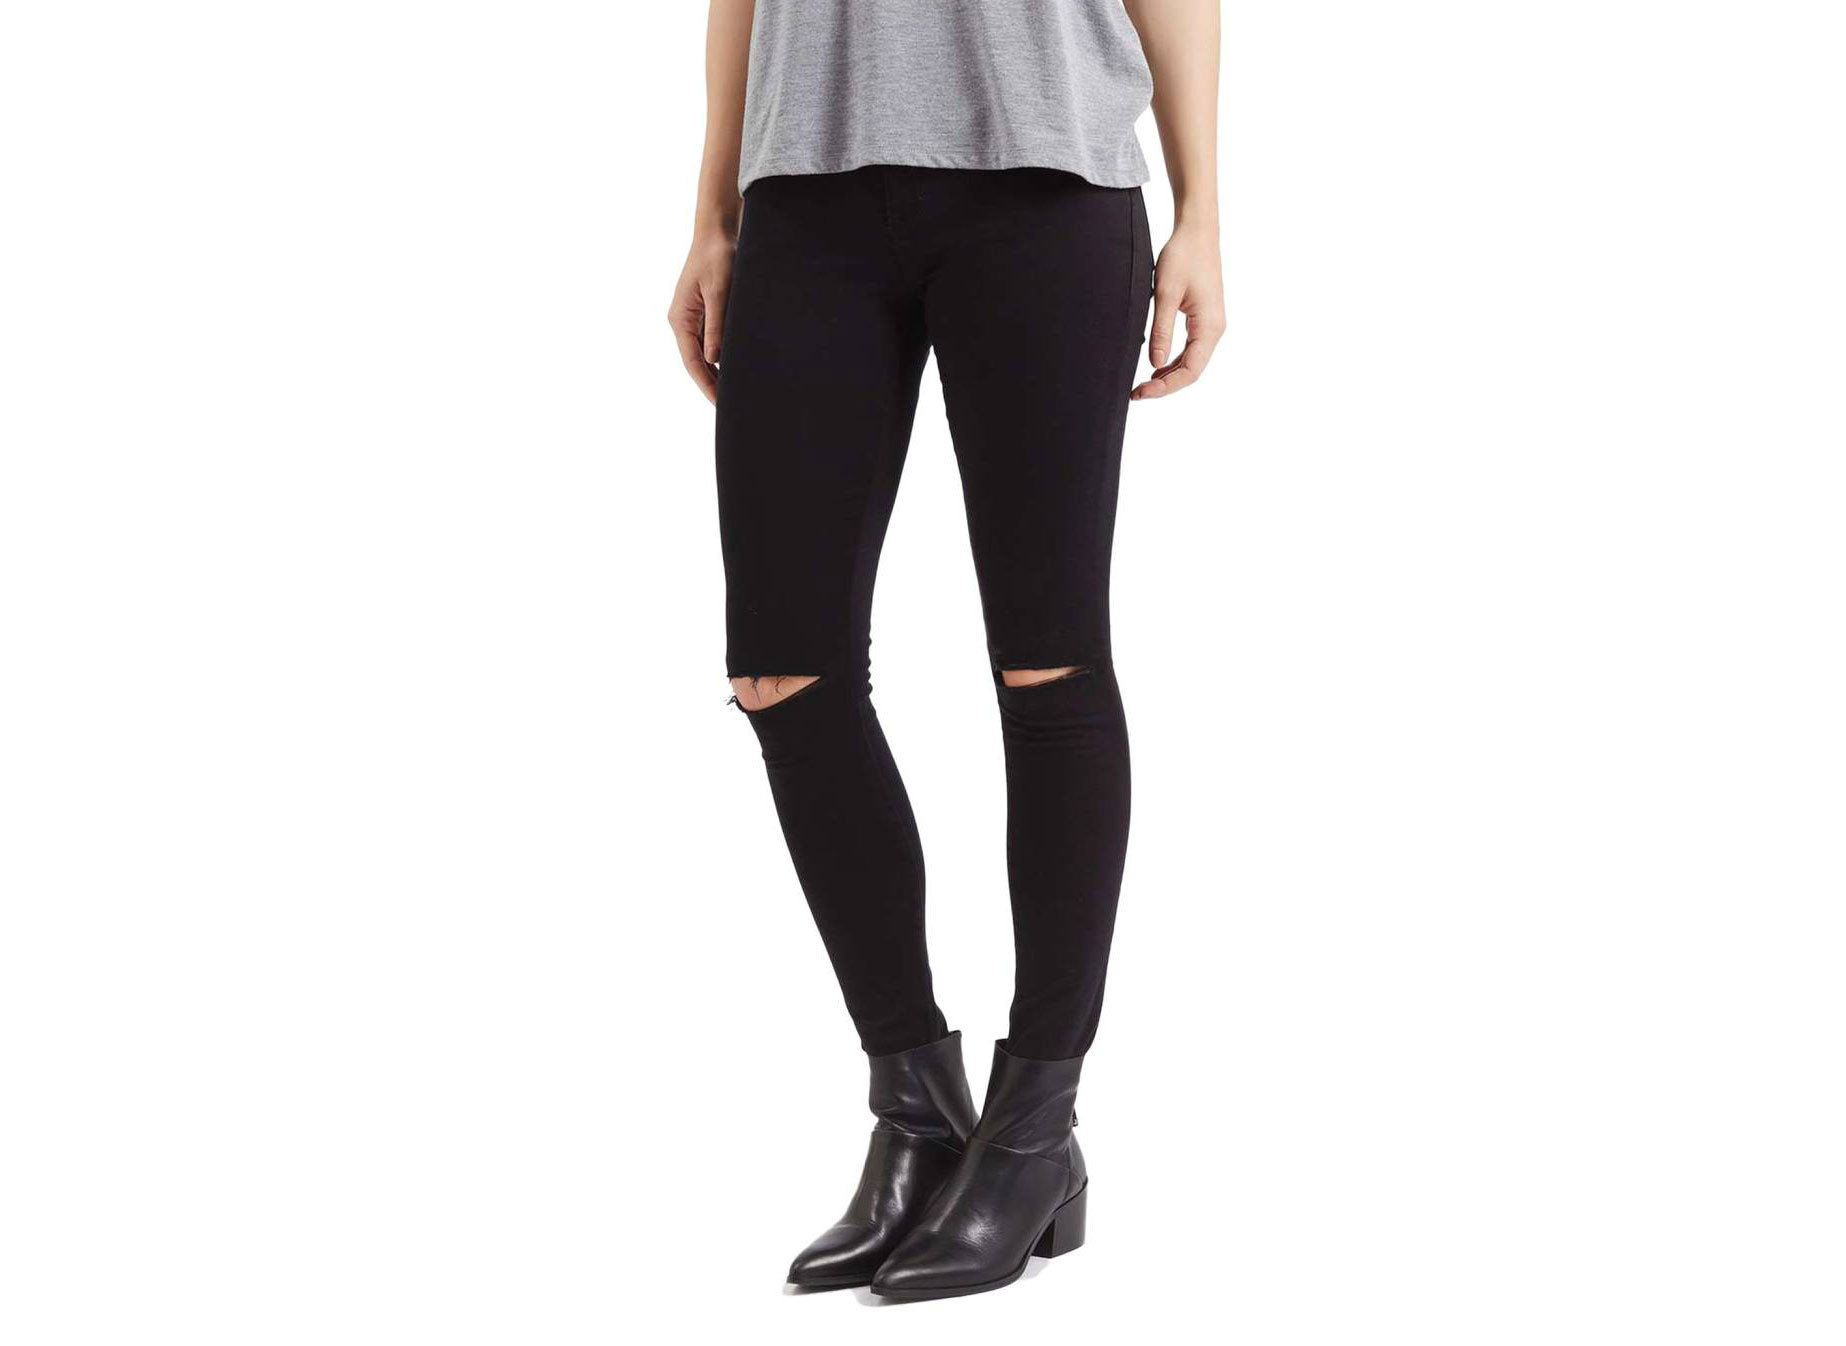 Style + Design Travel Shop clothing leggings tights waist jeans trousers active pants trouser joint posing